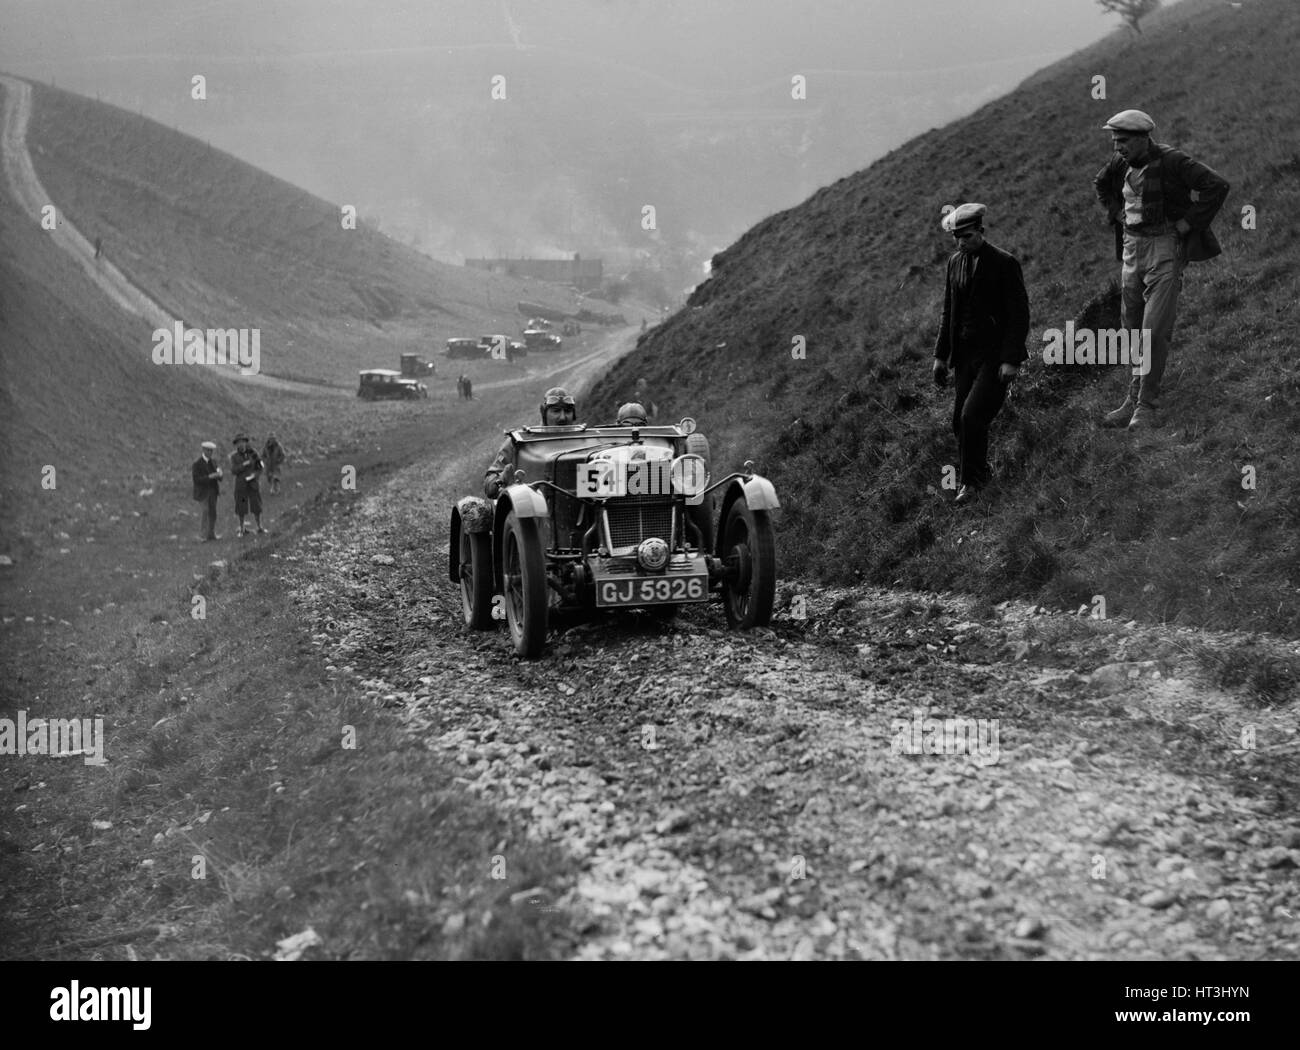 MG M Le Mans of CHD Berton competing in the MCC Sporting Trial, Litton Slack, Derbyshire, 1930. Artist: Bill Brunell. - Stock Image